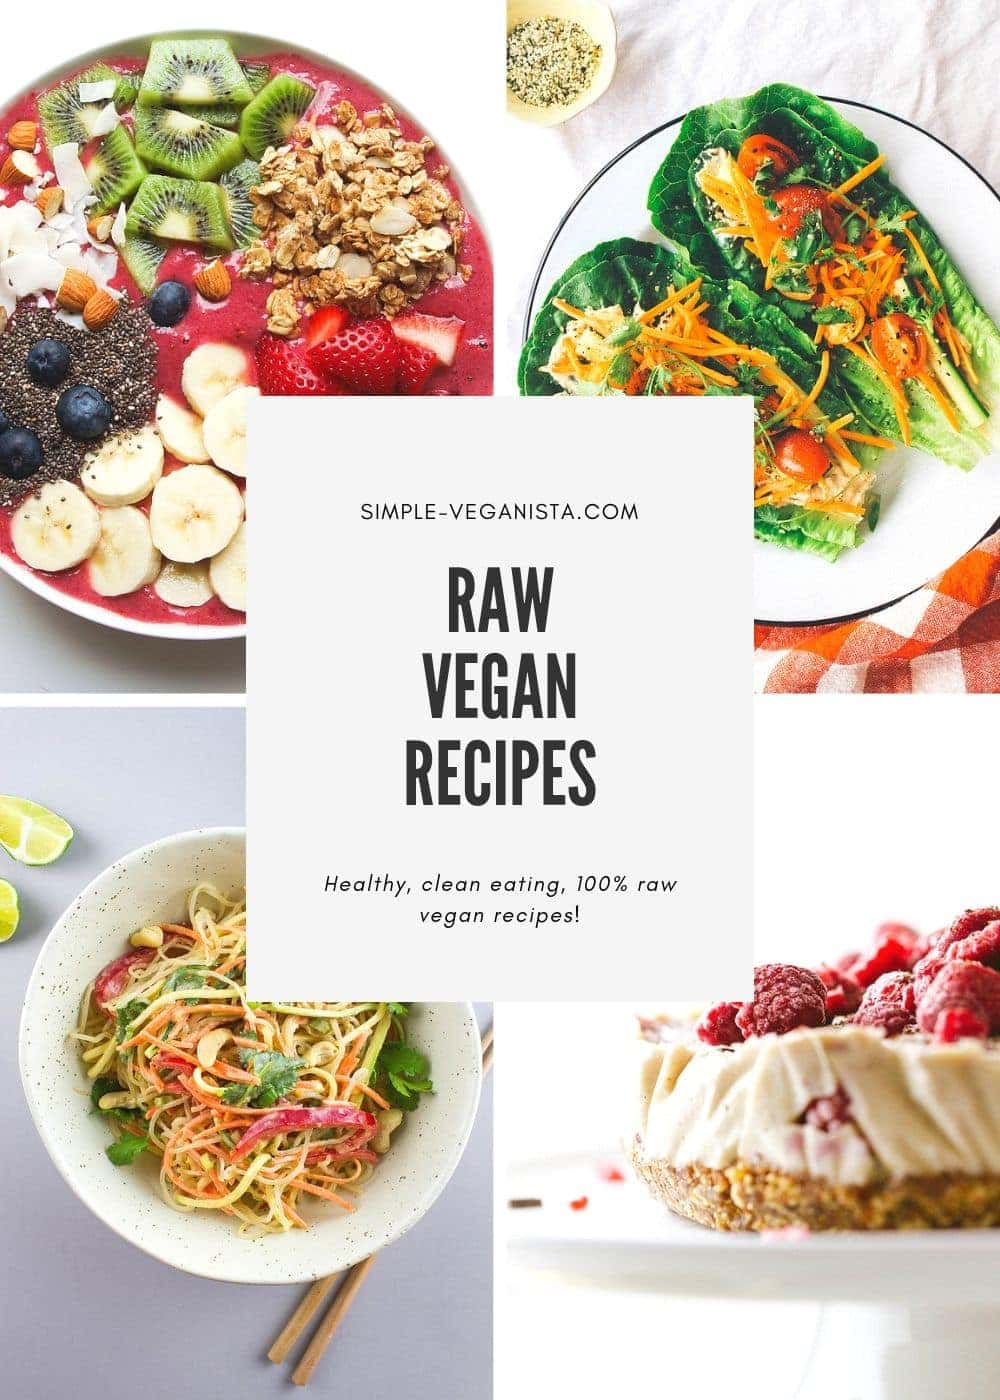 Raw Vegan Recipes The Simple Veganista